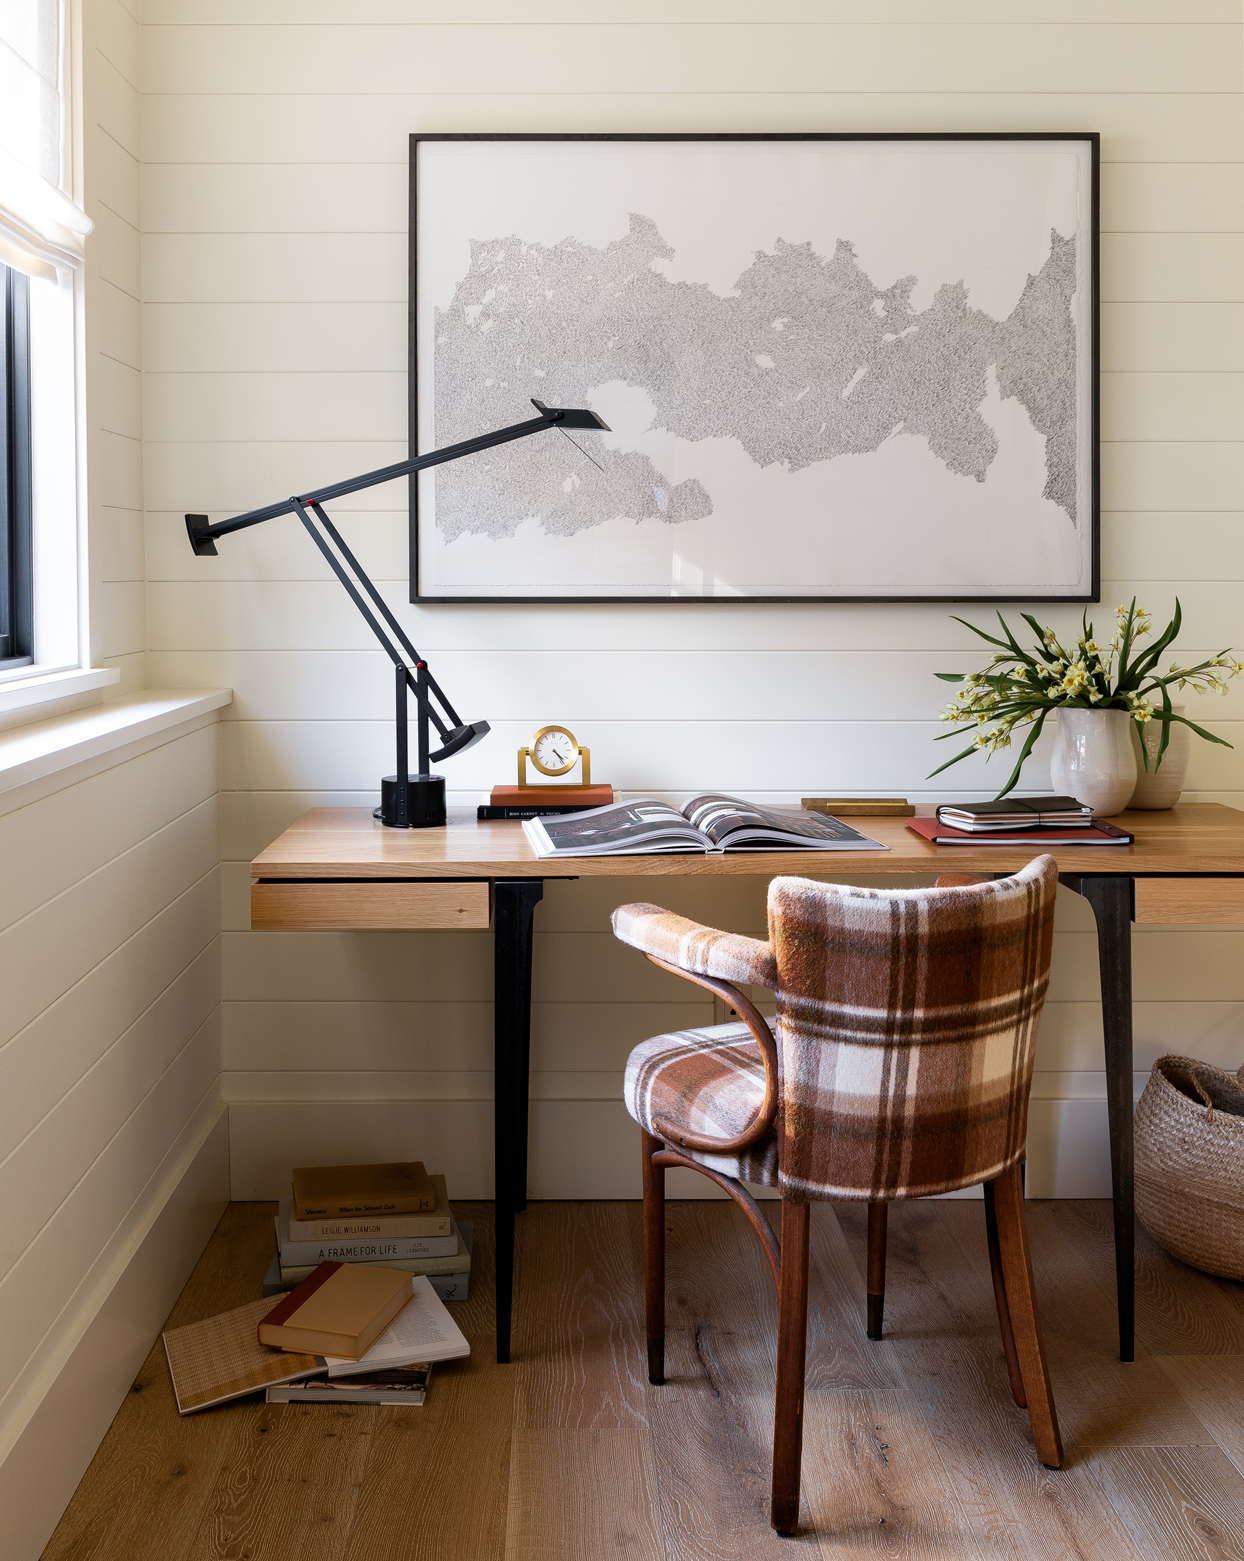 plaid chair at wooden desk in home office